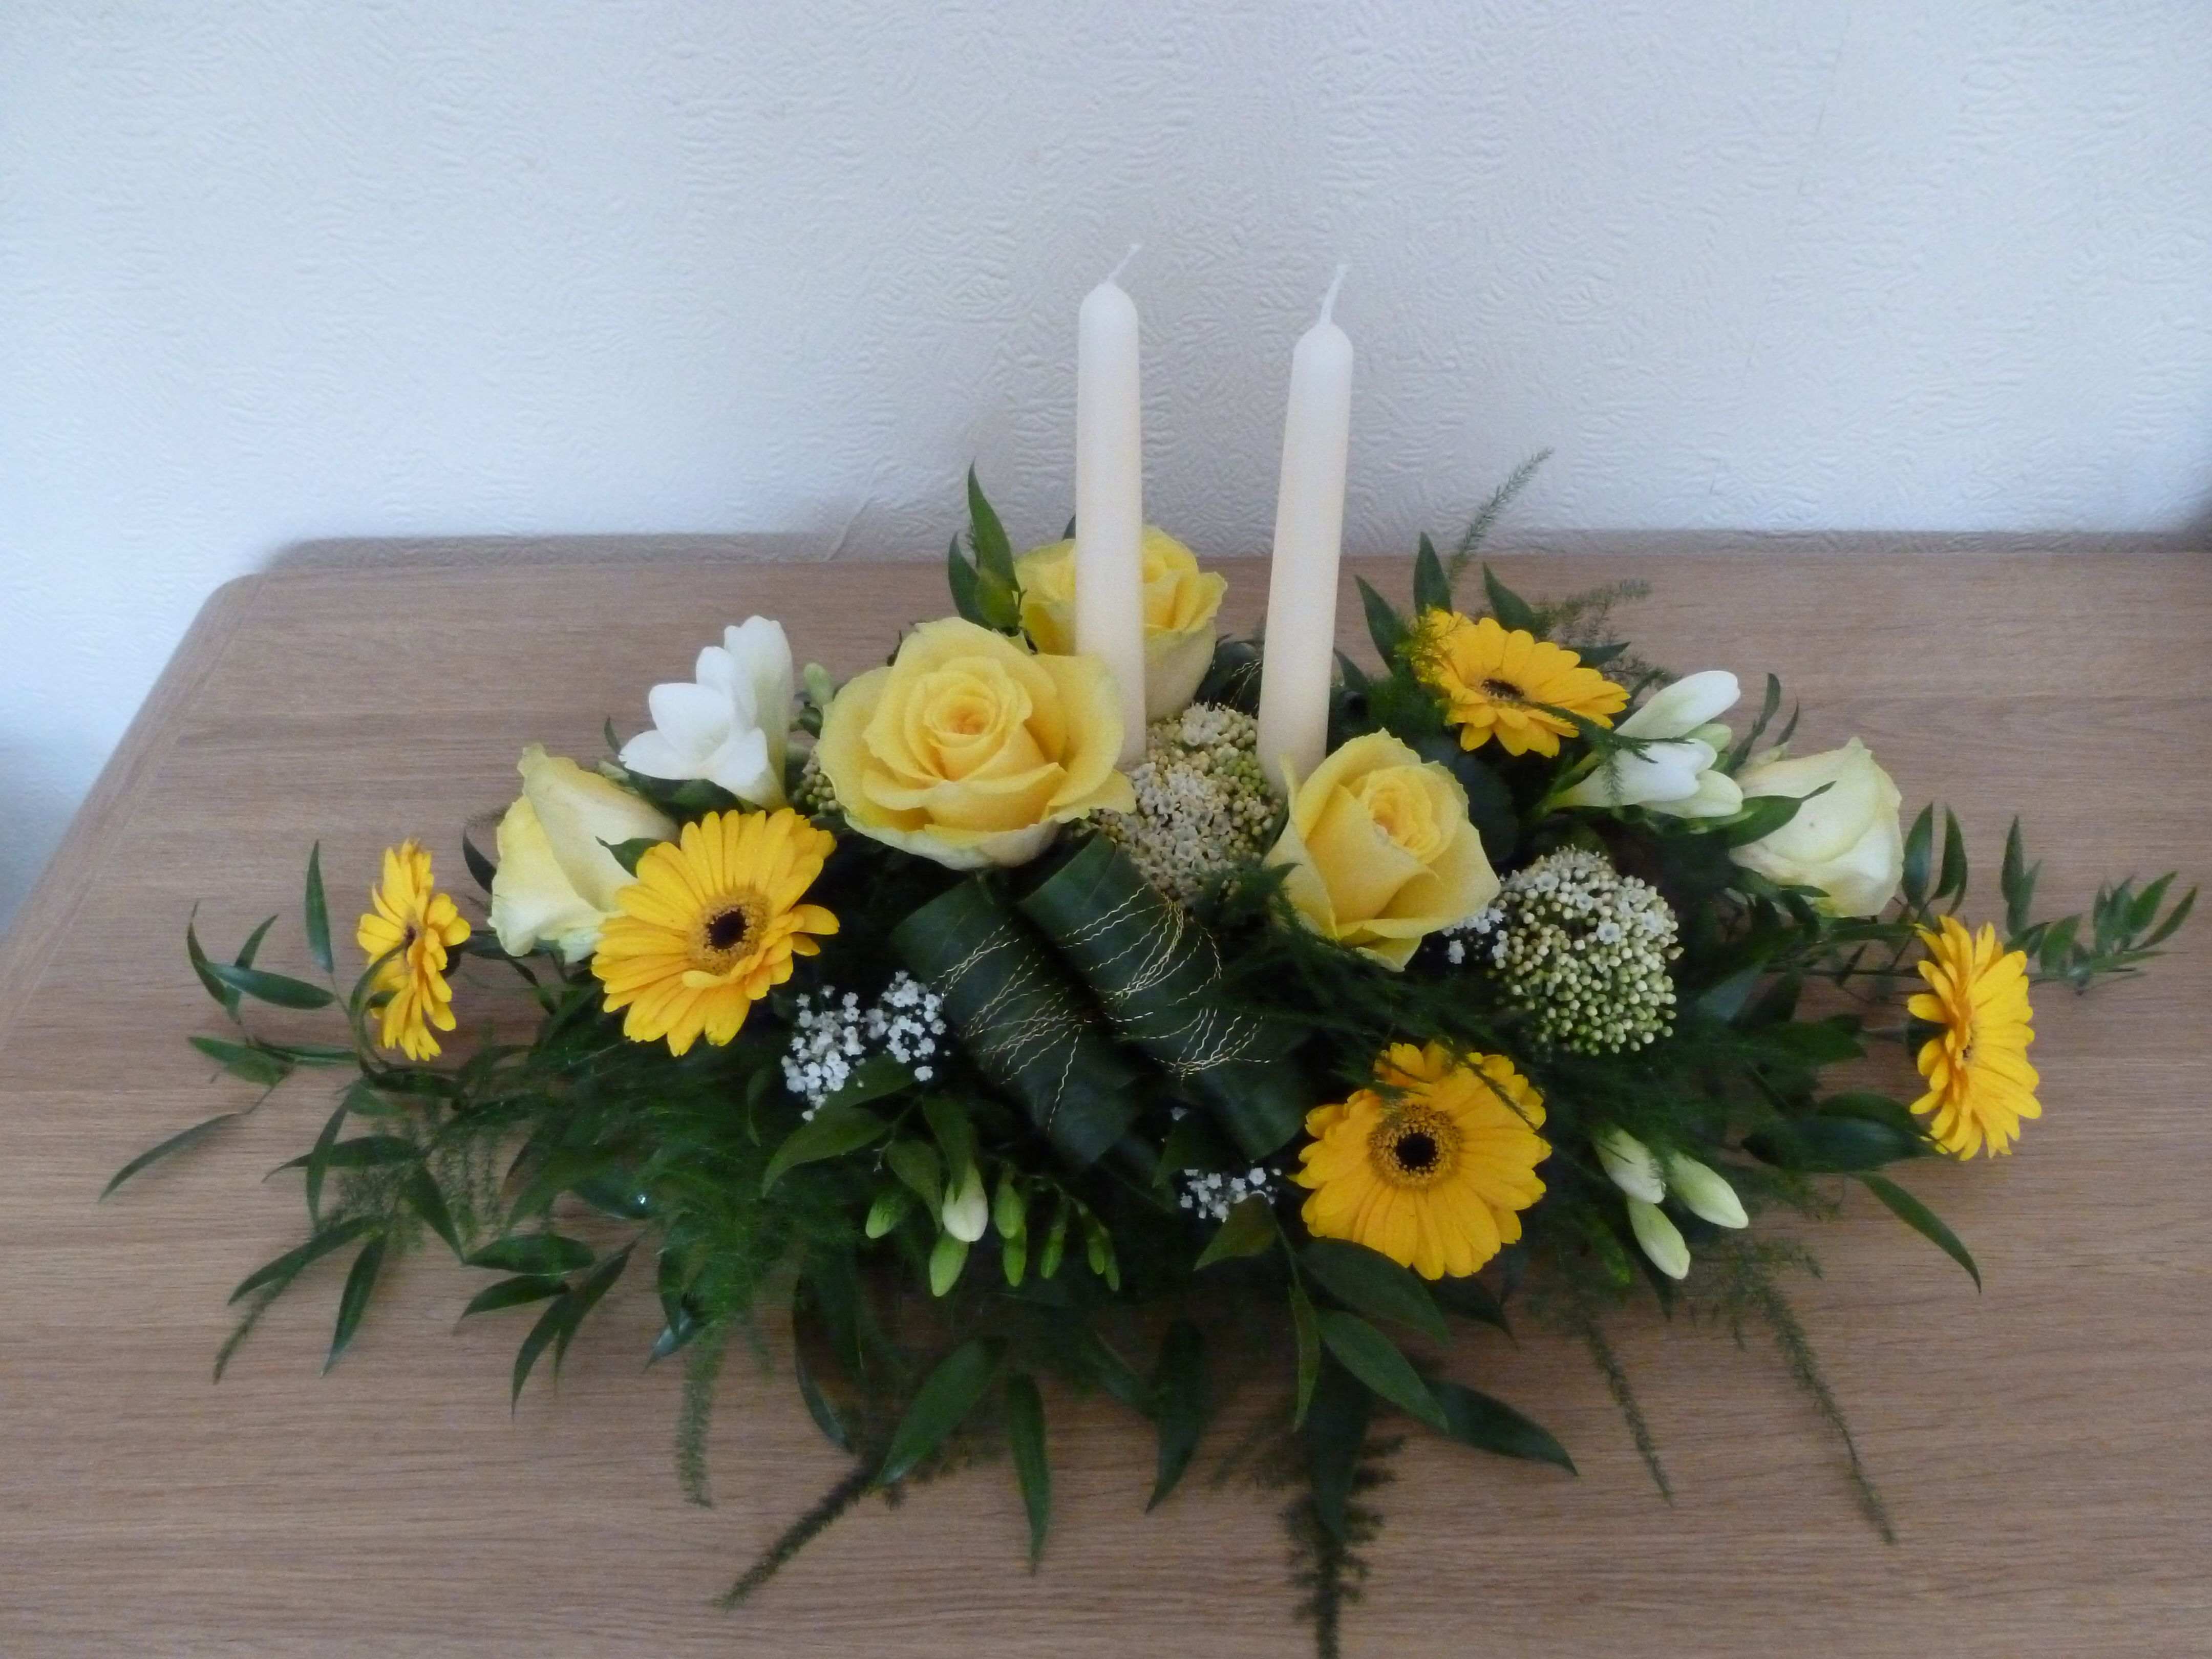 A lemon and cream long low table arrangement can be